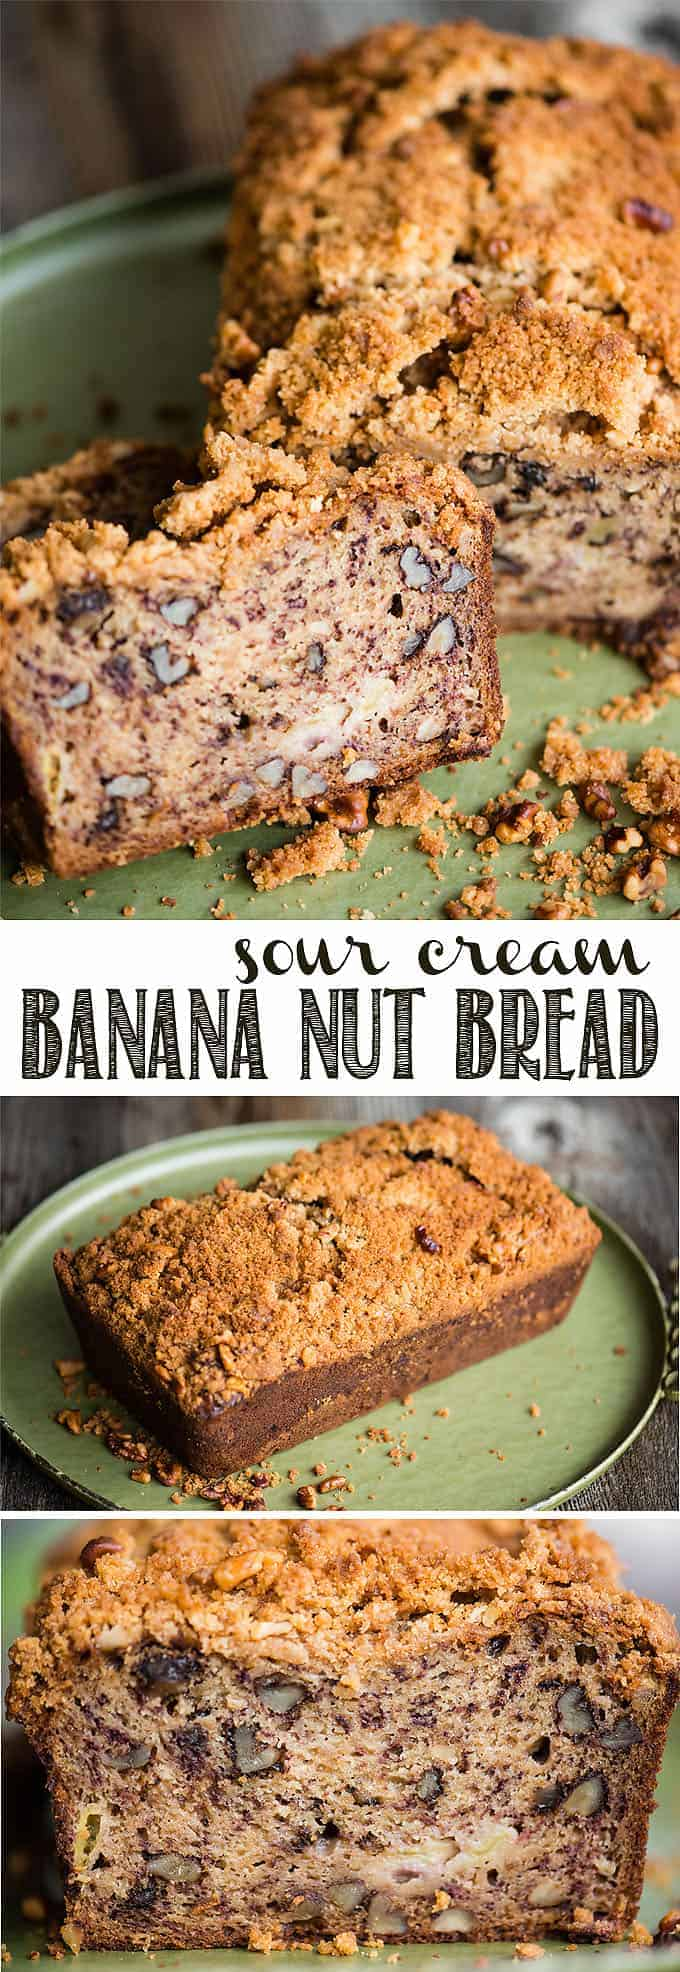 Sour cream banana nut bread self proclaimed foodie sour cream banana nut bread is a super moist banana bread recipe with a crunchy sweet forumfinder Image collections